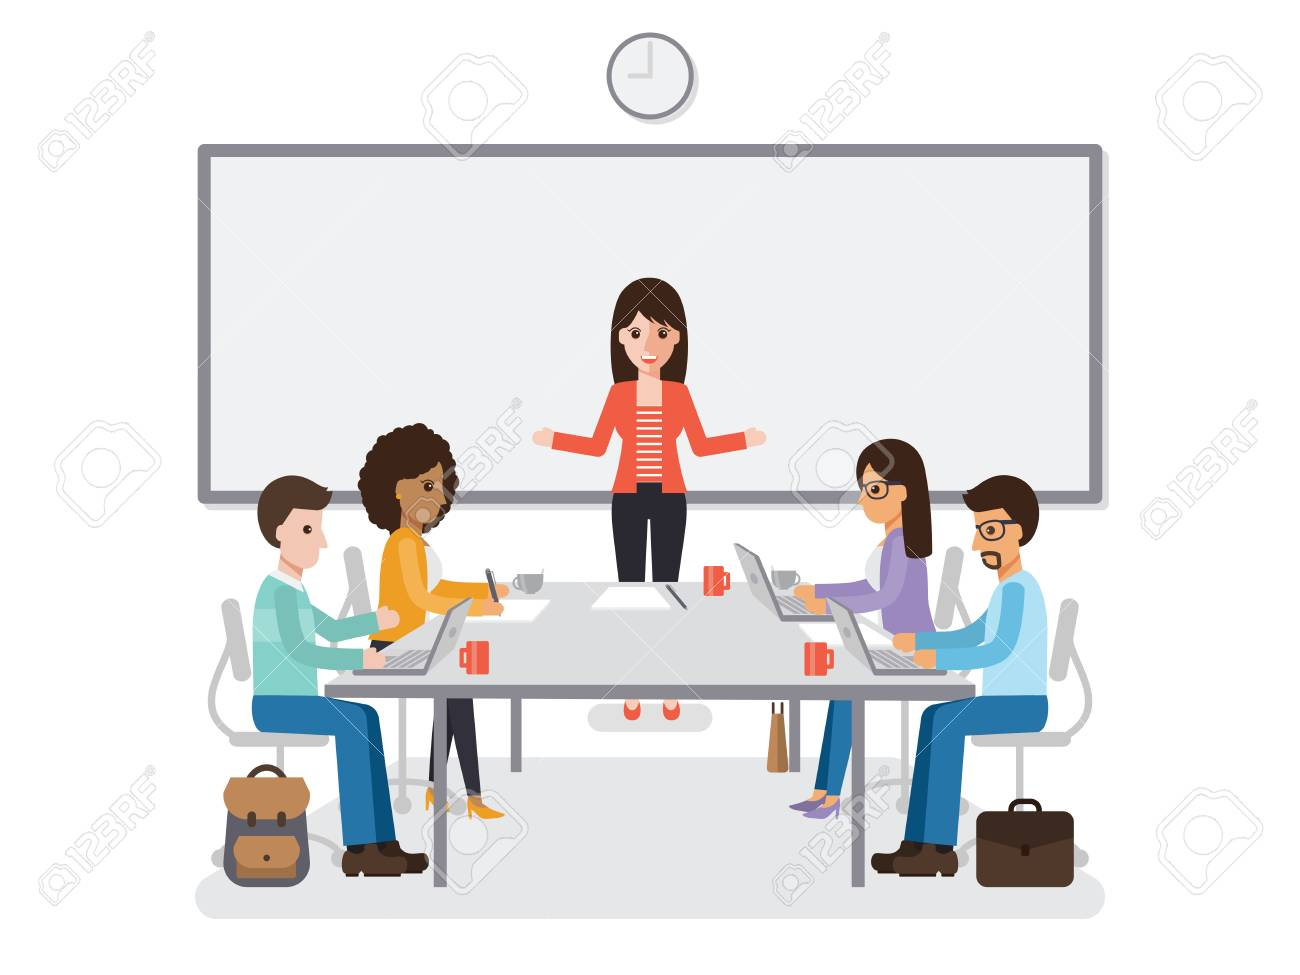 Image result for cartoon images of meeting rooms